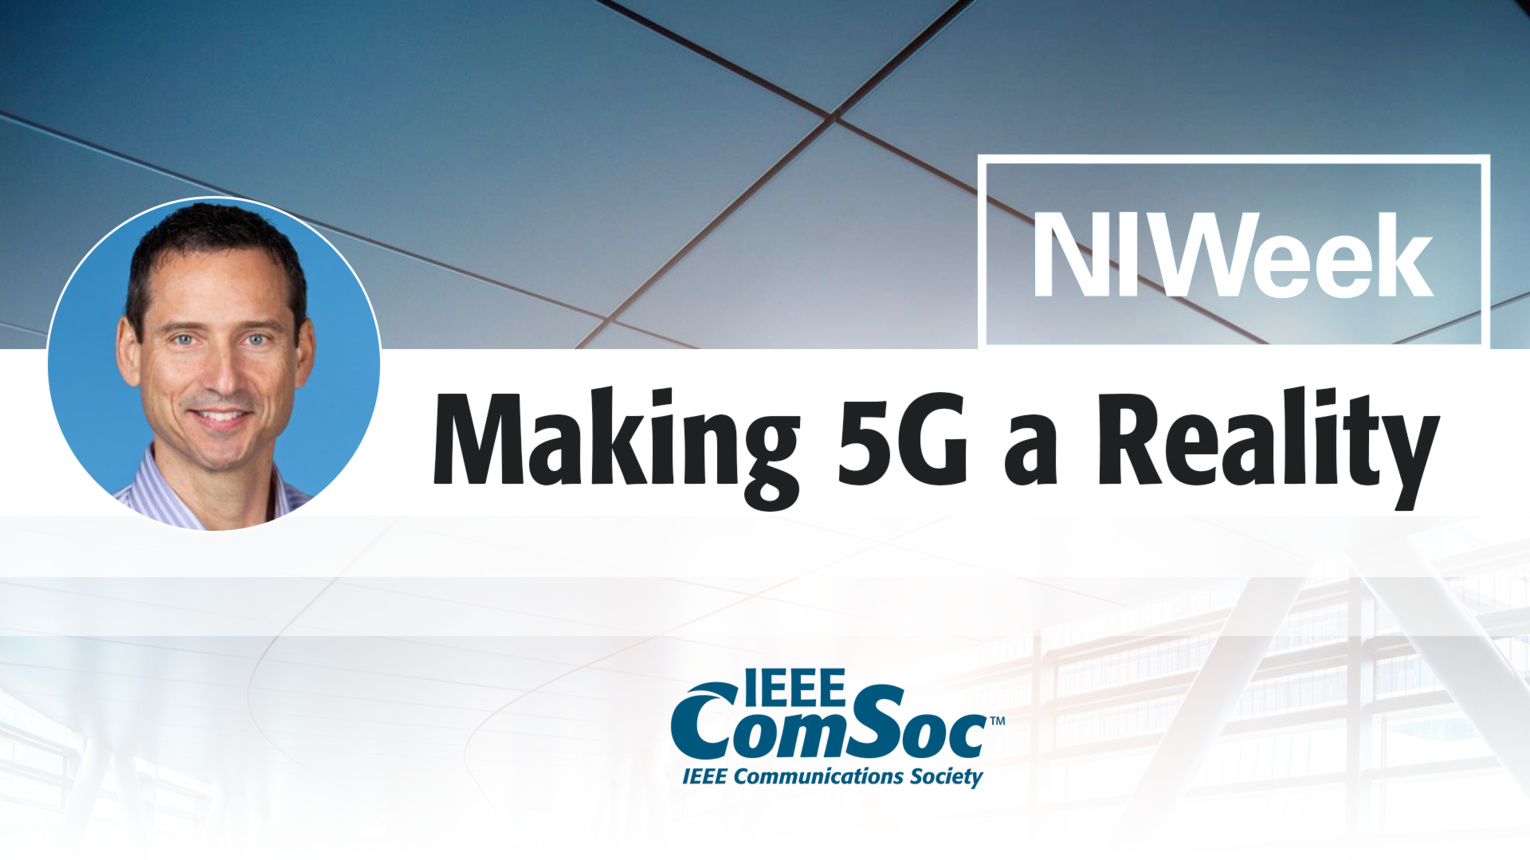 Making 5G a Reality: Mike Santori Keynote from NIWeek 5G Summit